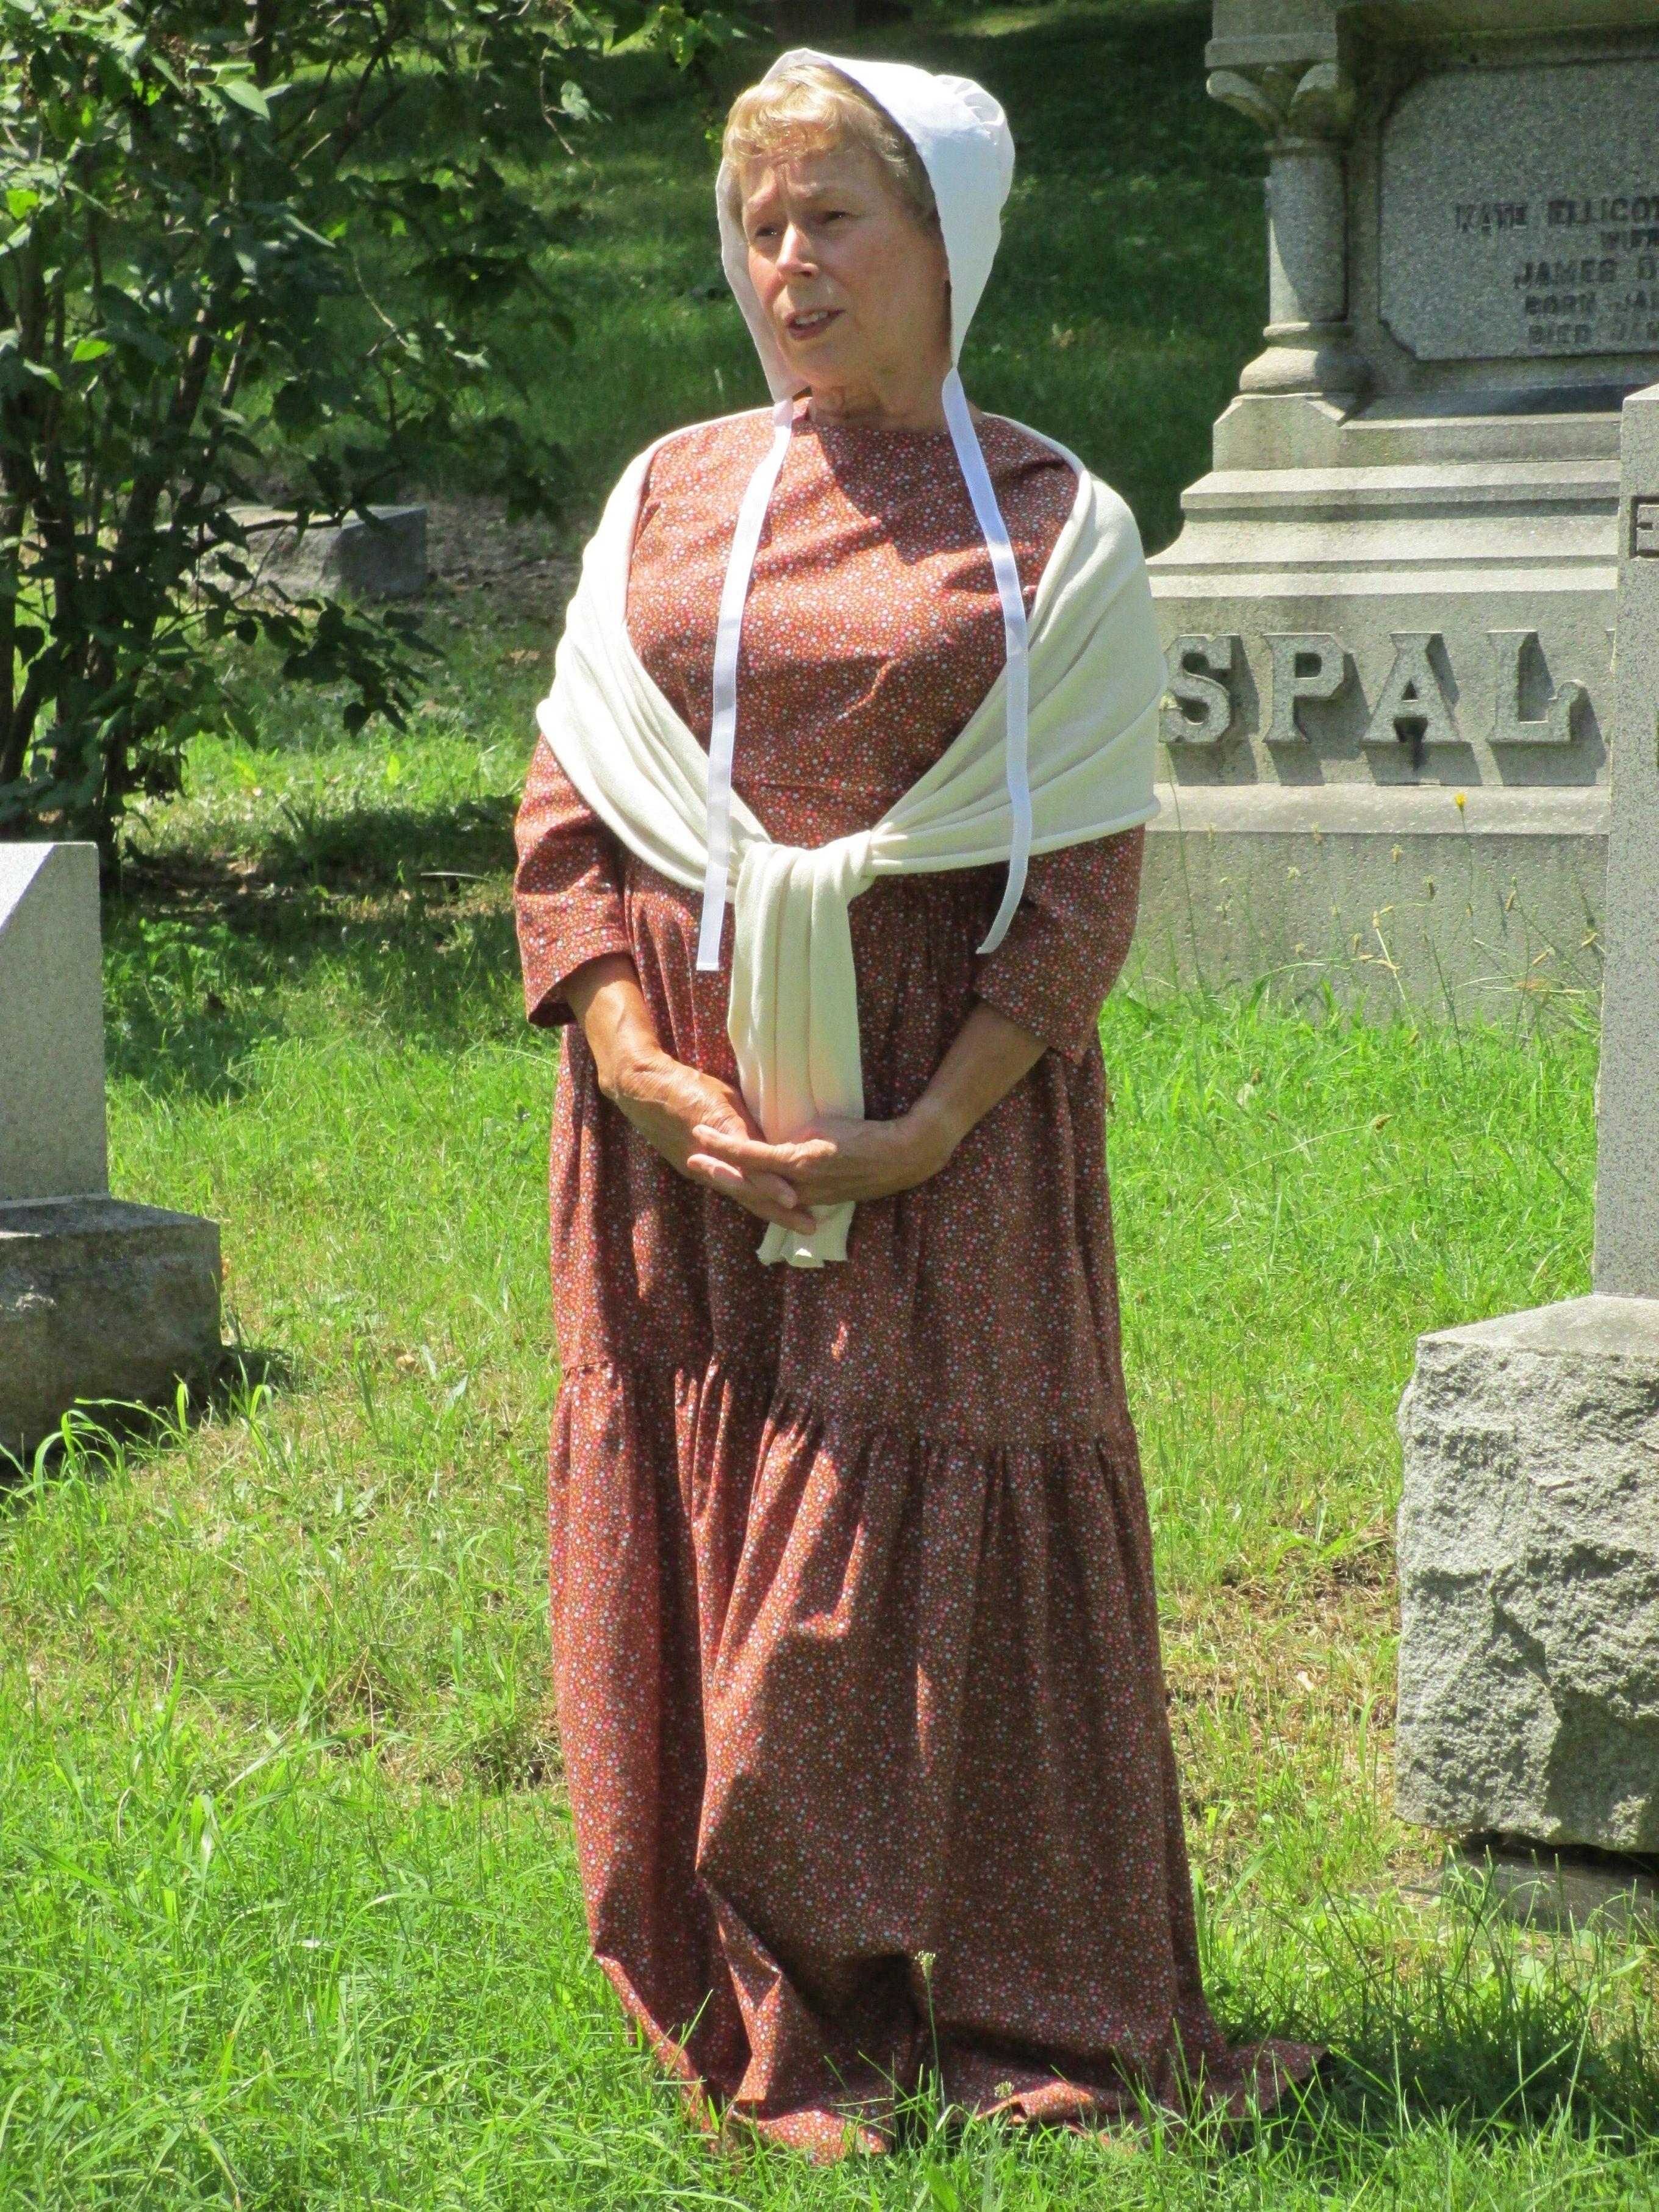 Carol Caisse will be among the re-enactors for the Niagara History Center event.